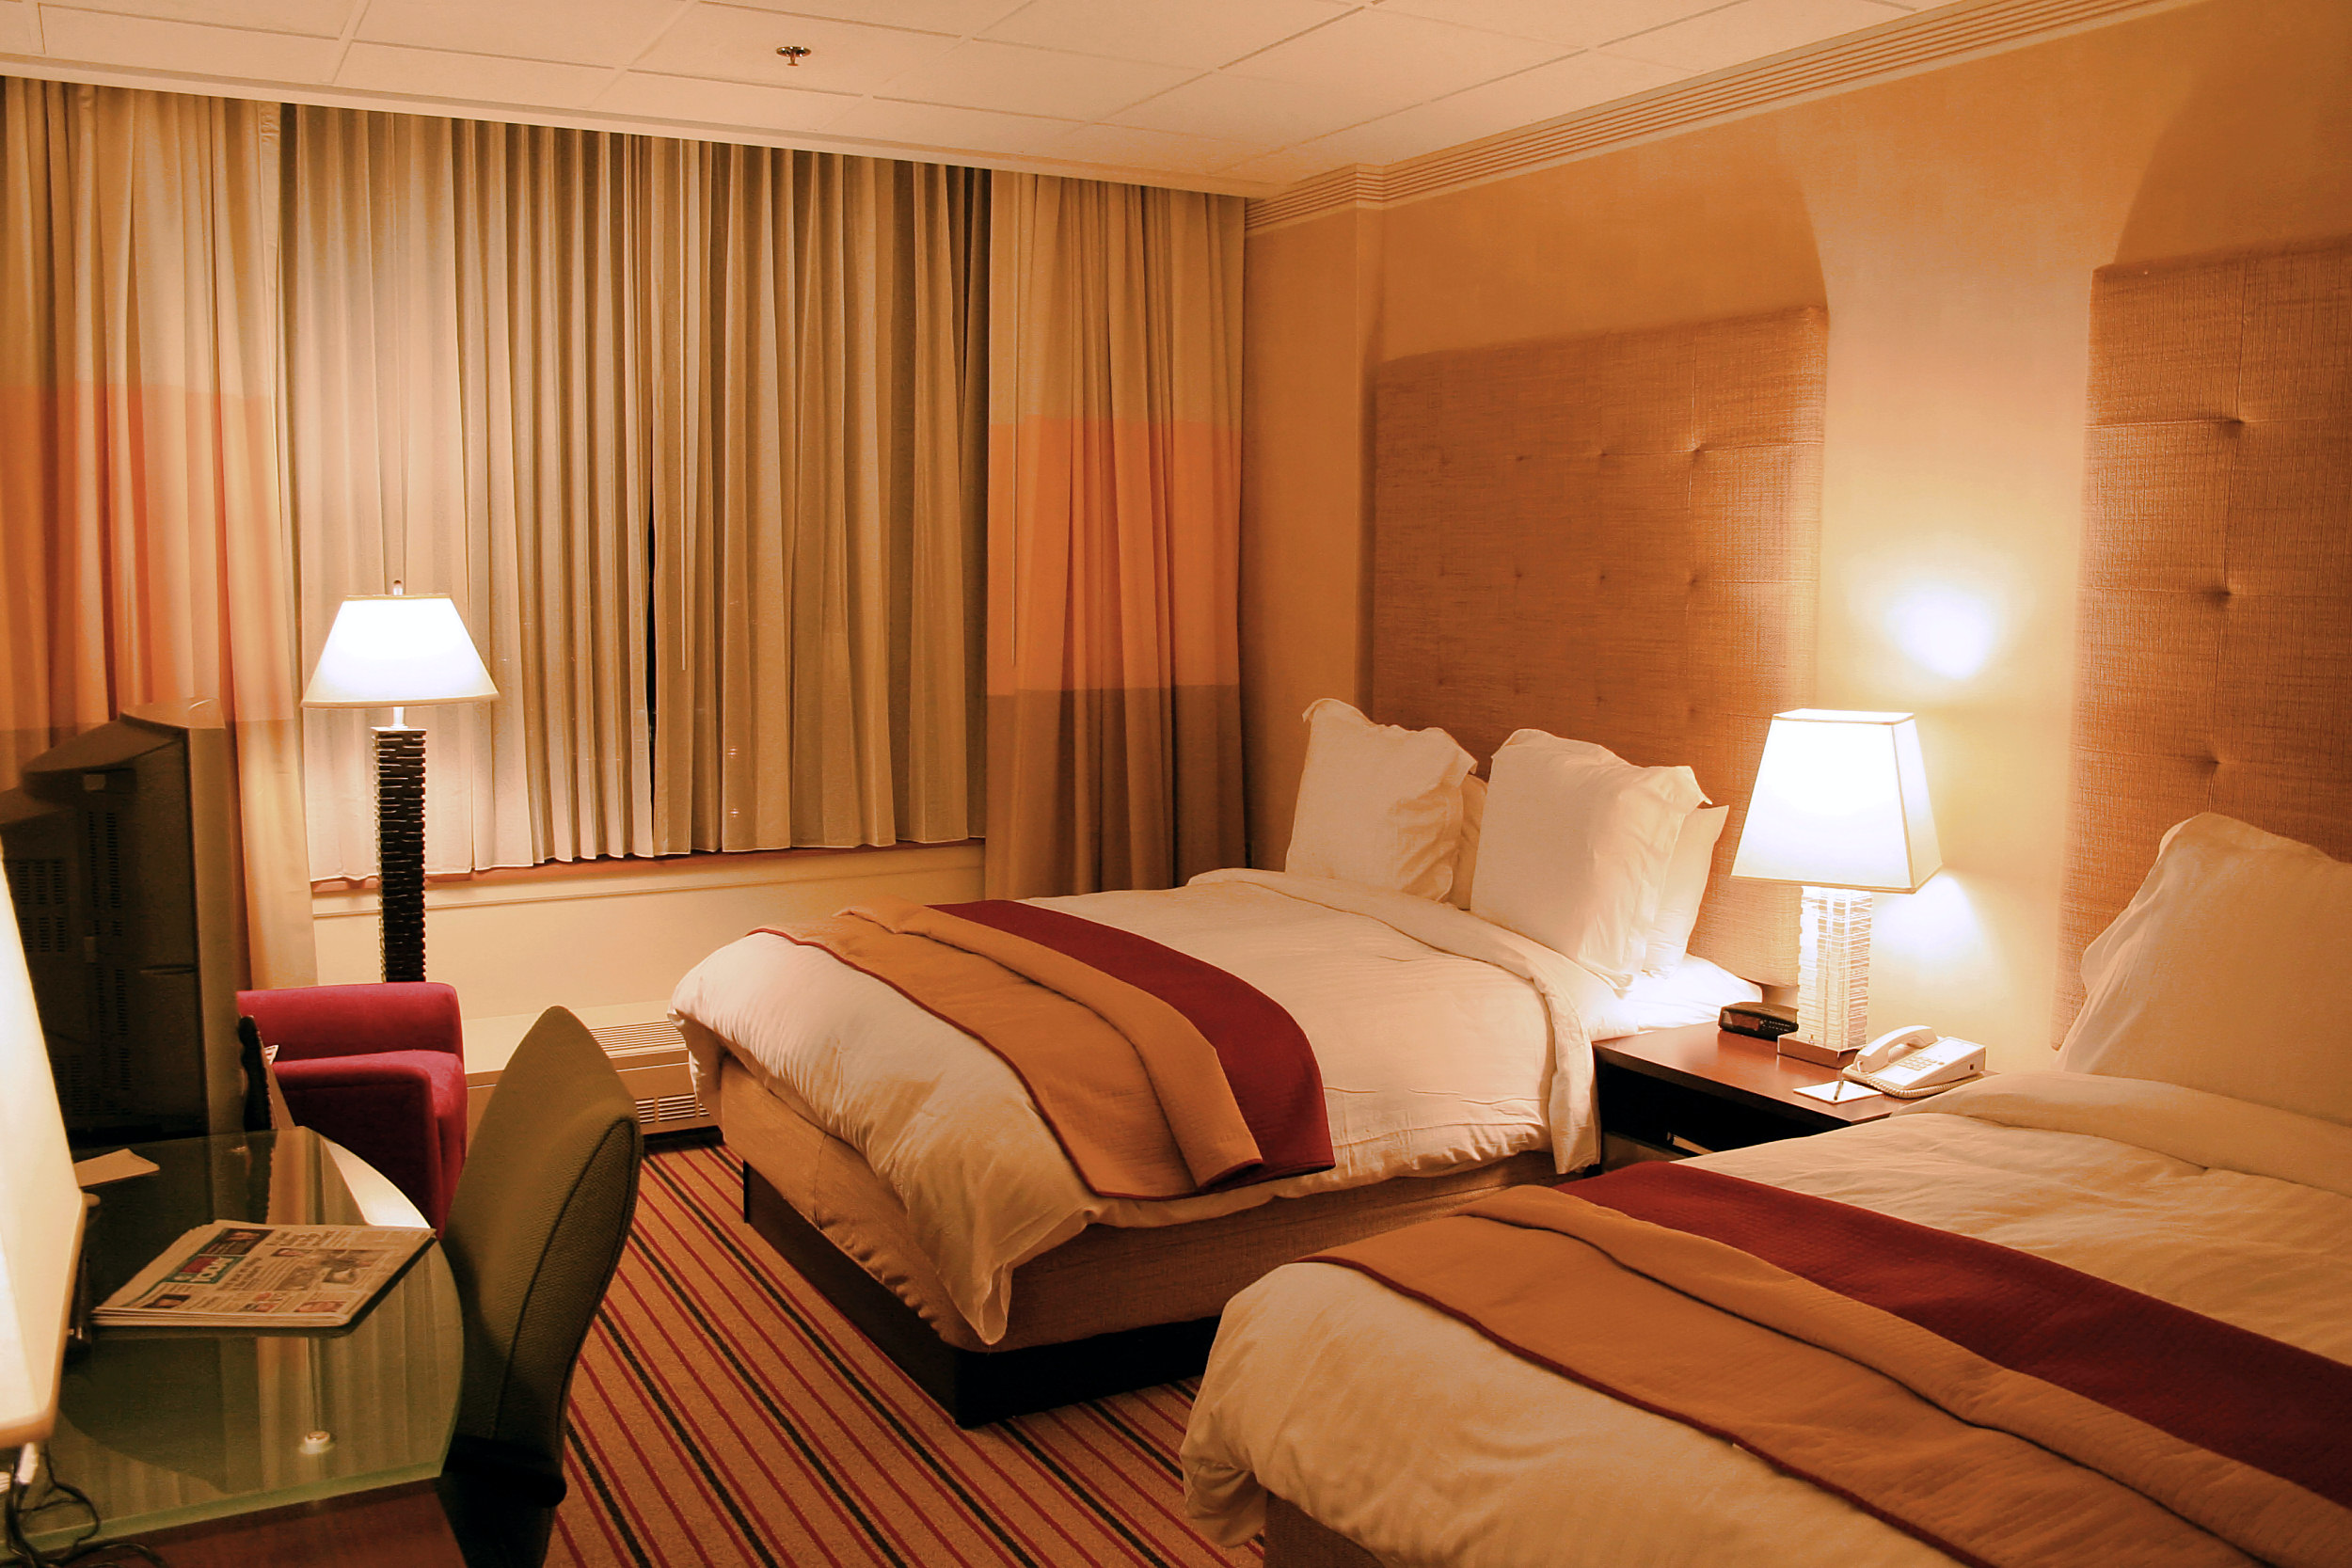 Affordable hotels in Chennai with cordial amenities